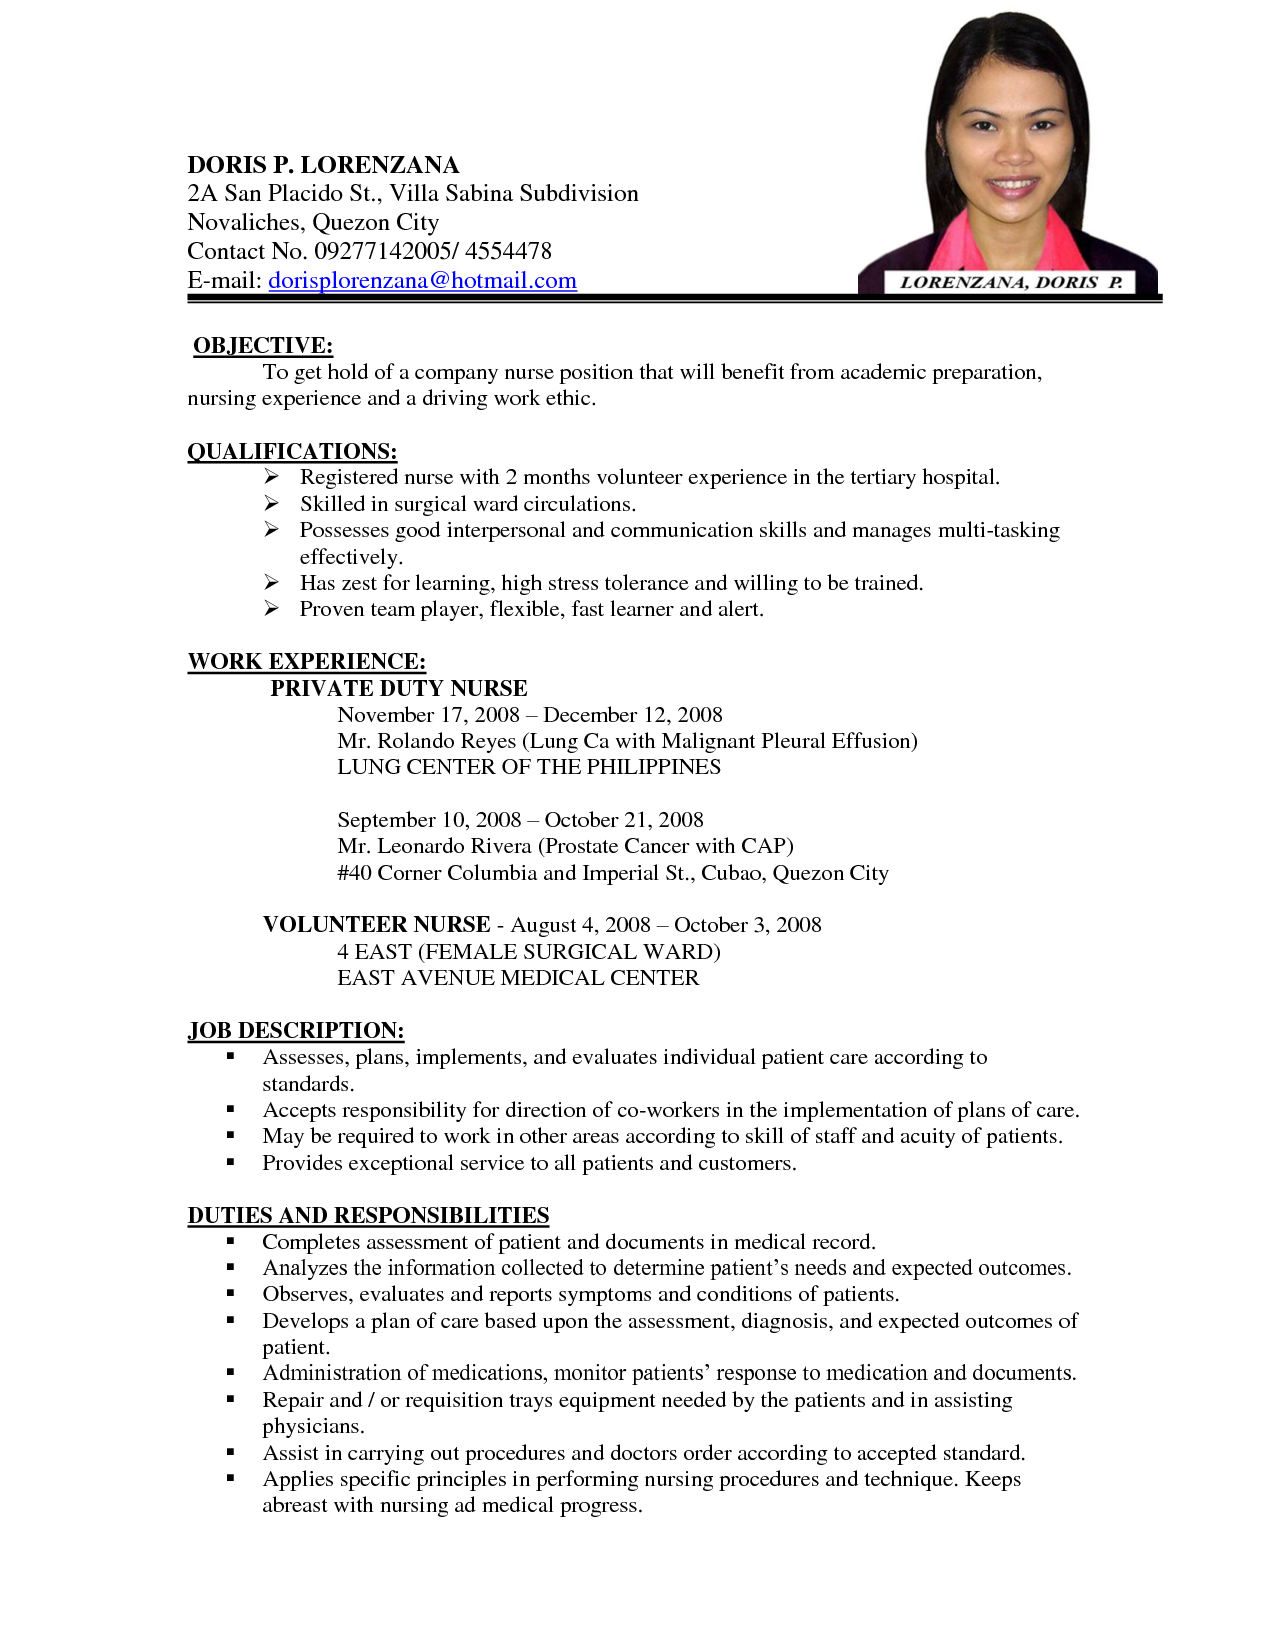 Career Resume Template Job Resume Job Resume Samples Sample Resume Format